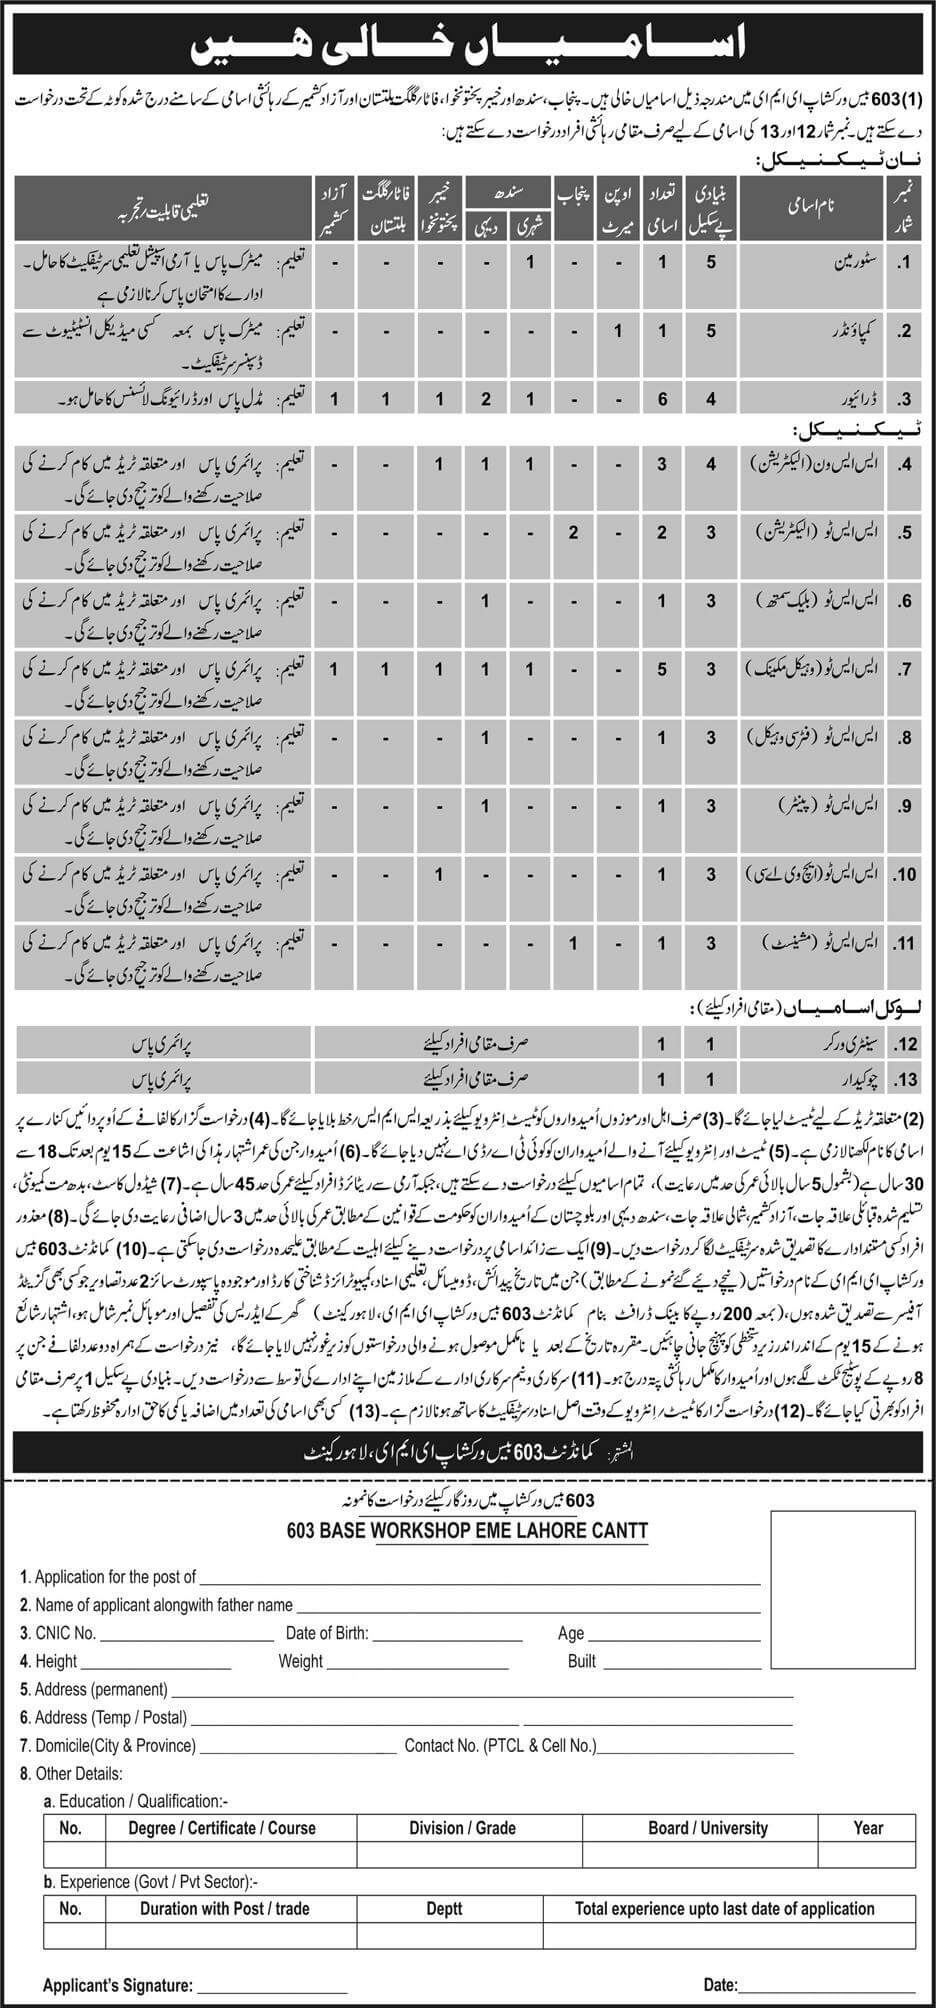 603 Base Workshop EME Pak Army Jobs 2018  in Lahore on November, 2018 | Pakistan Army